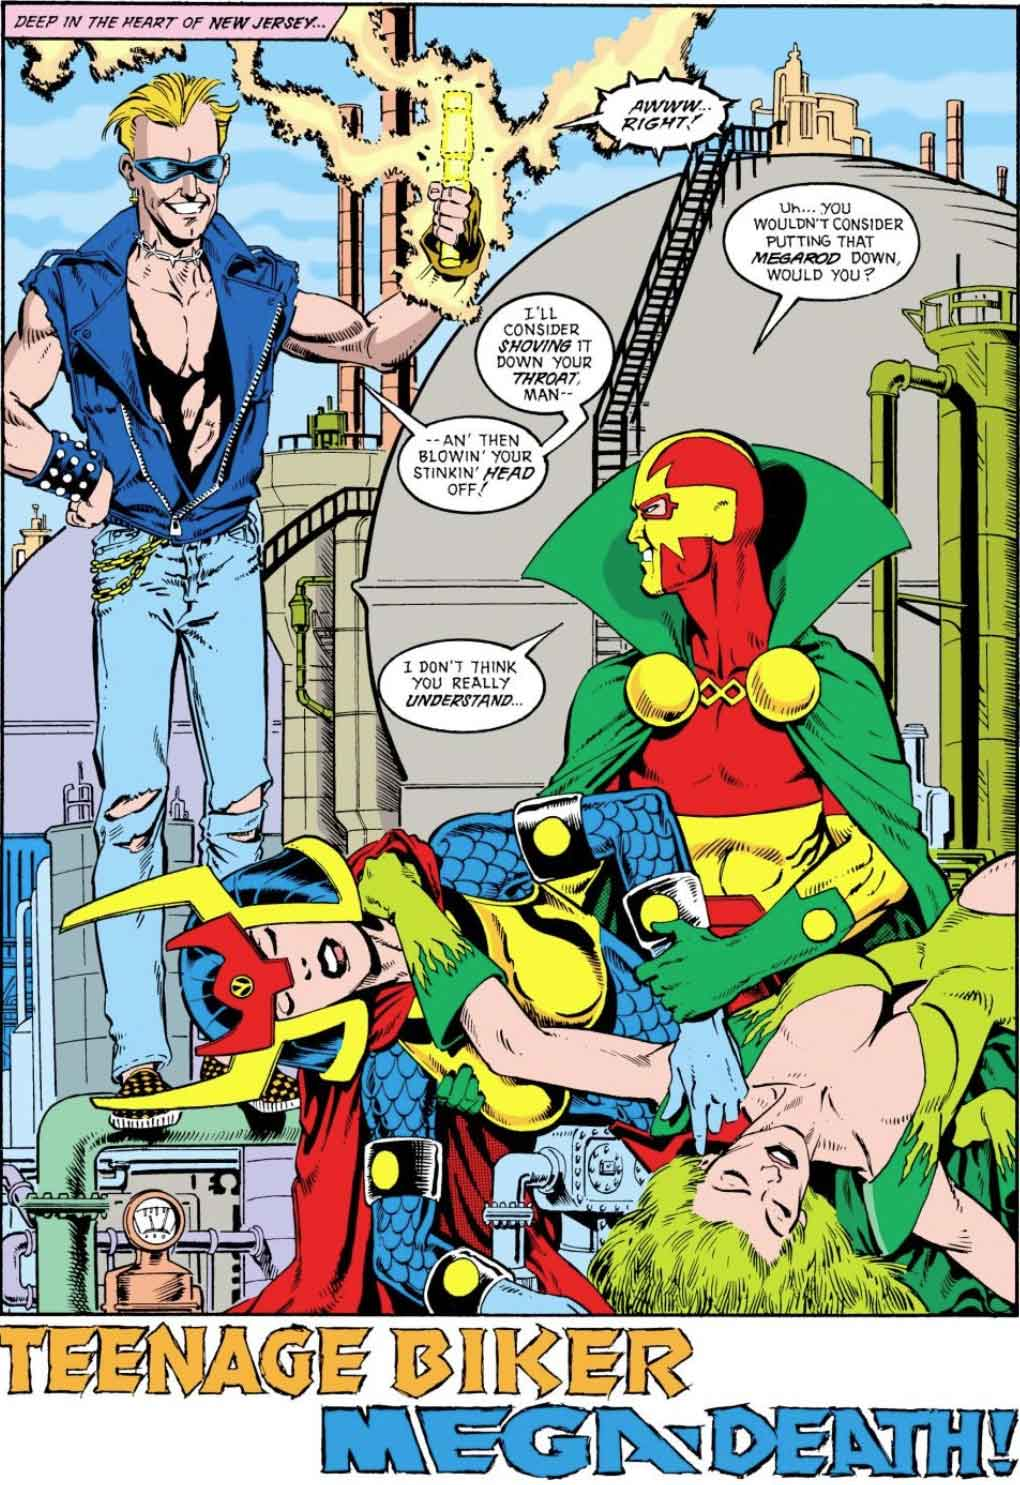 Justice League America #30 by Keith Giffen, J.M. DeMatteis, Bill Willingham, and Joe Rubinstein